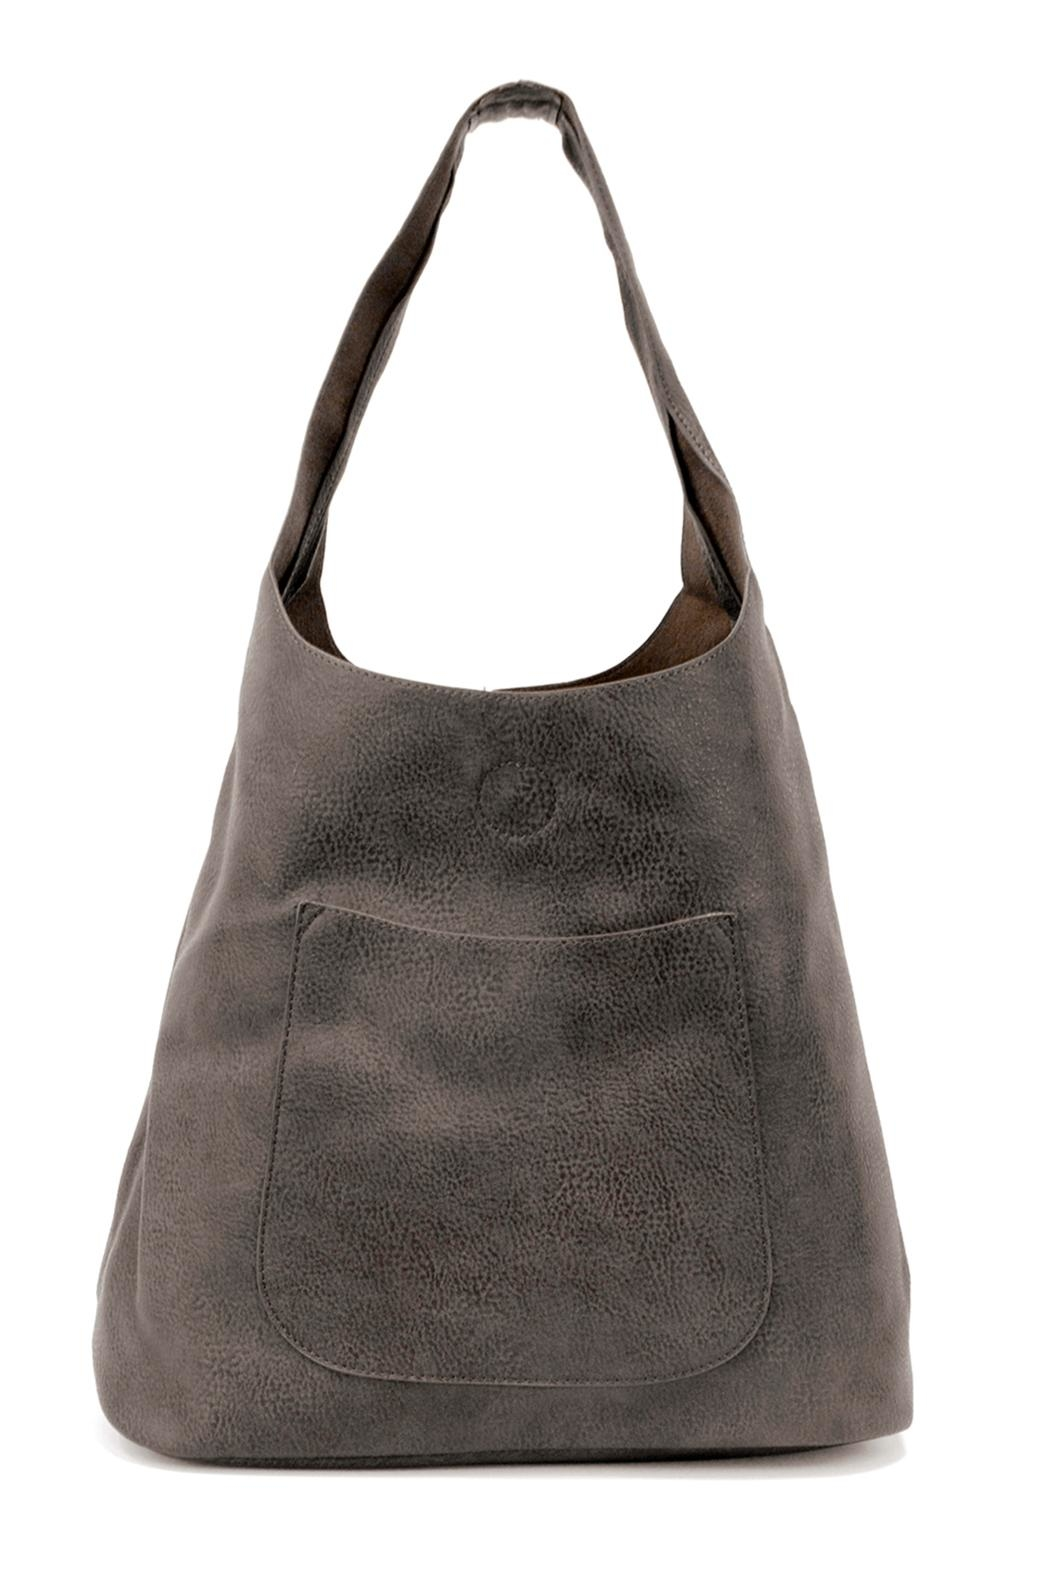 Joy Susan Accessories Molly Slouchy Hobo - Front Cropped Image